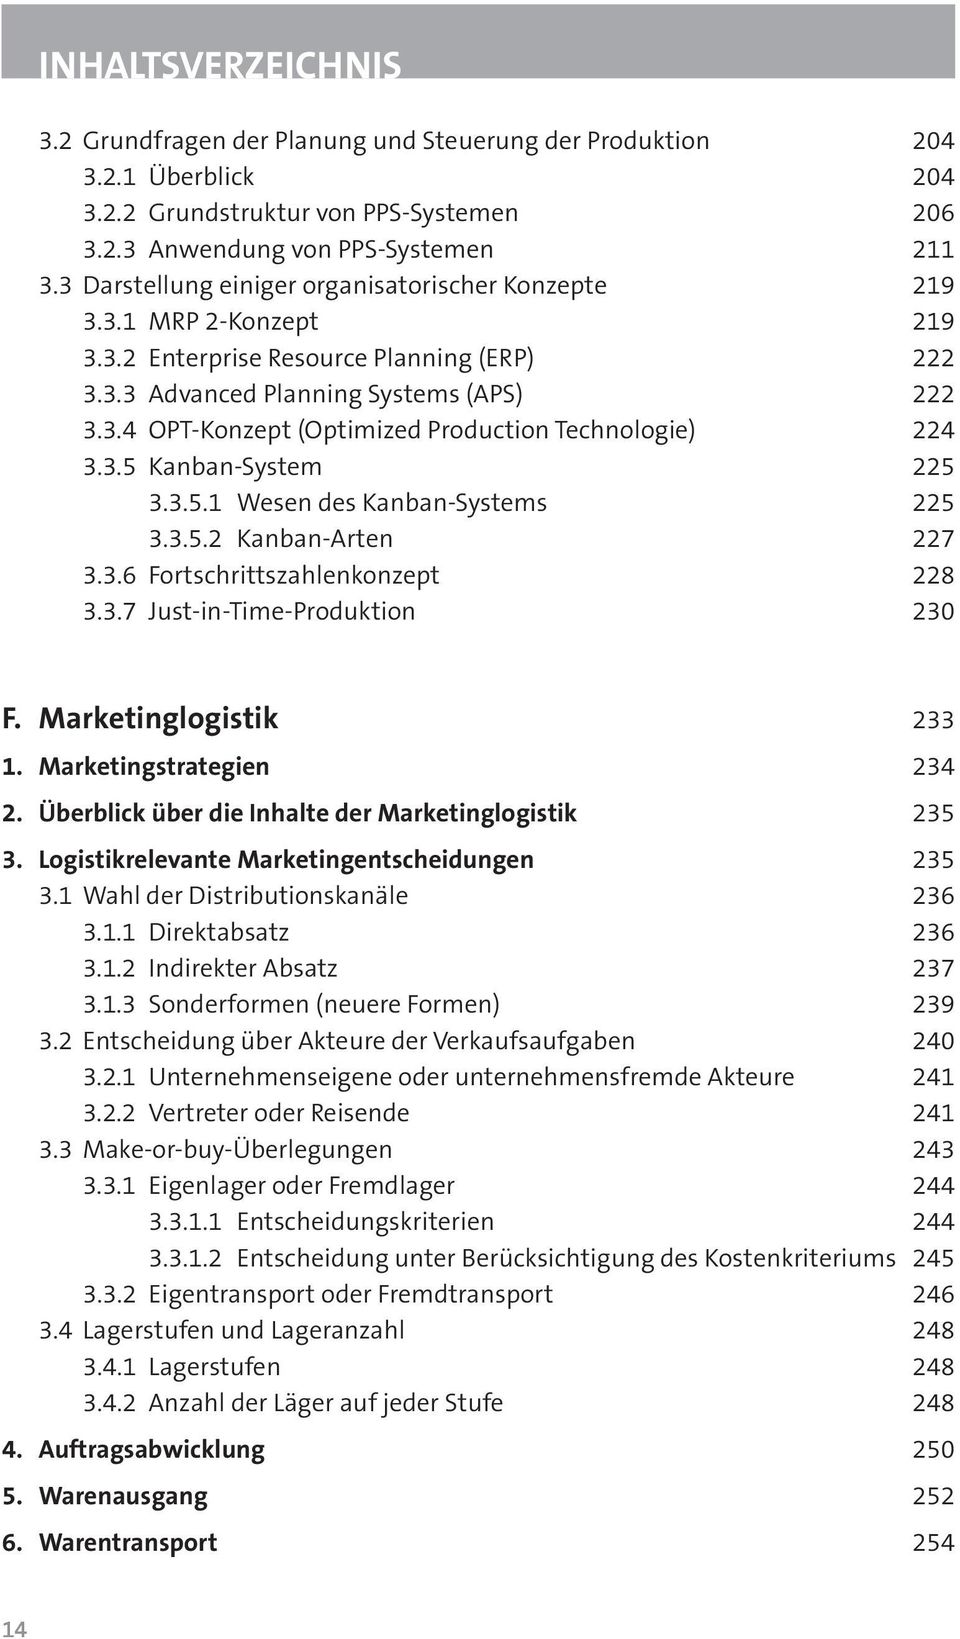 3.5 Kanban-System 225 3.3.5.1 Wesen des Kanban-Systems 225 3.3.5.2 Kanban-Arten 227 3.3.6 Fortschrittszahlenkonzept 228 3.3.7 Just-in-Time-Produktion 230 F. Marketinglogistik 233 1.